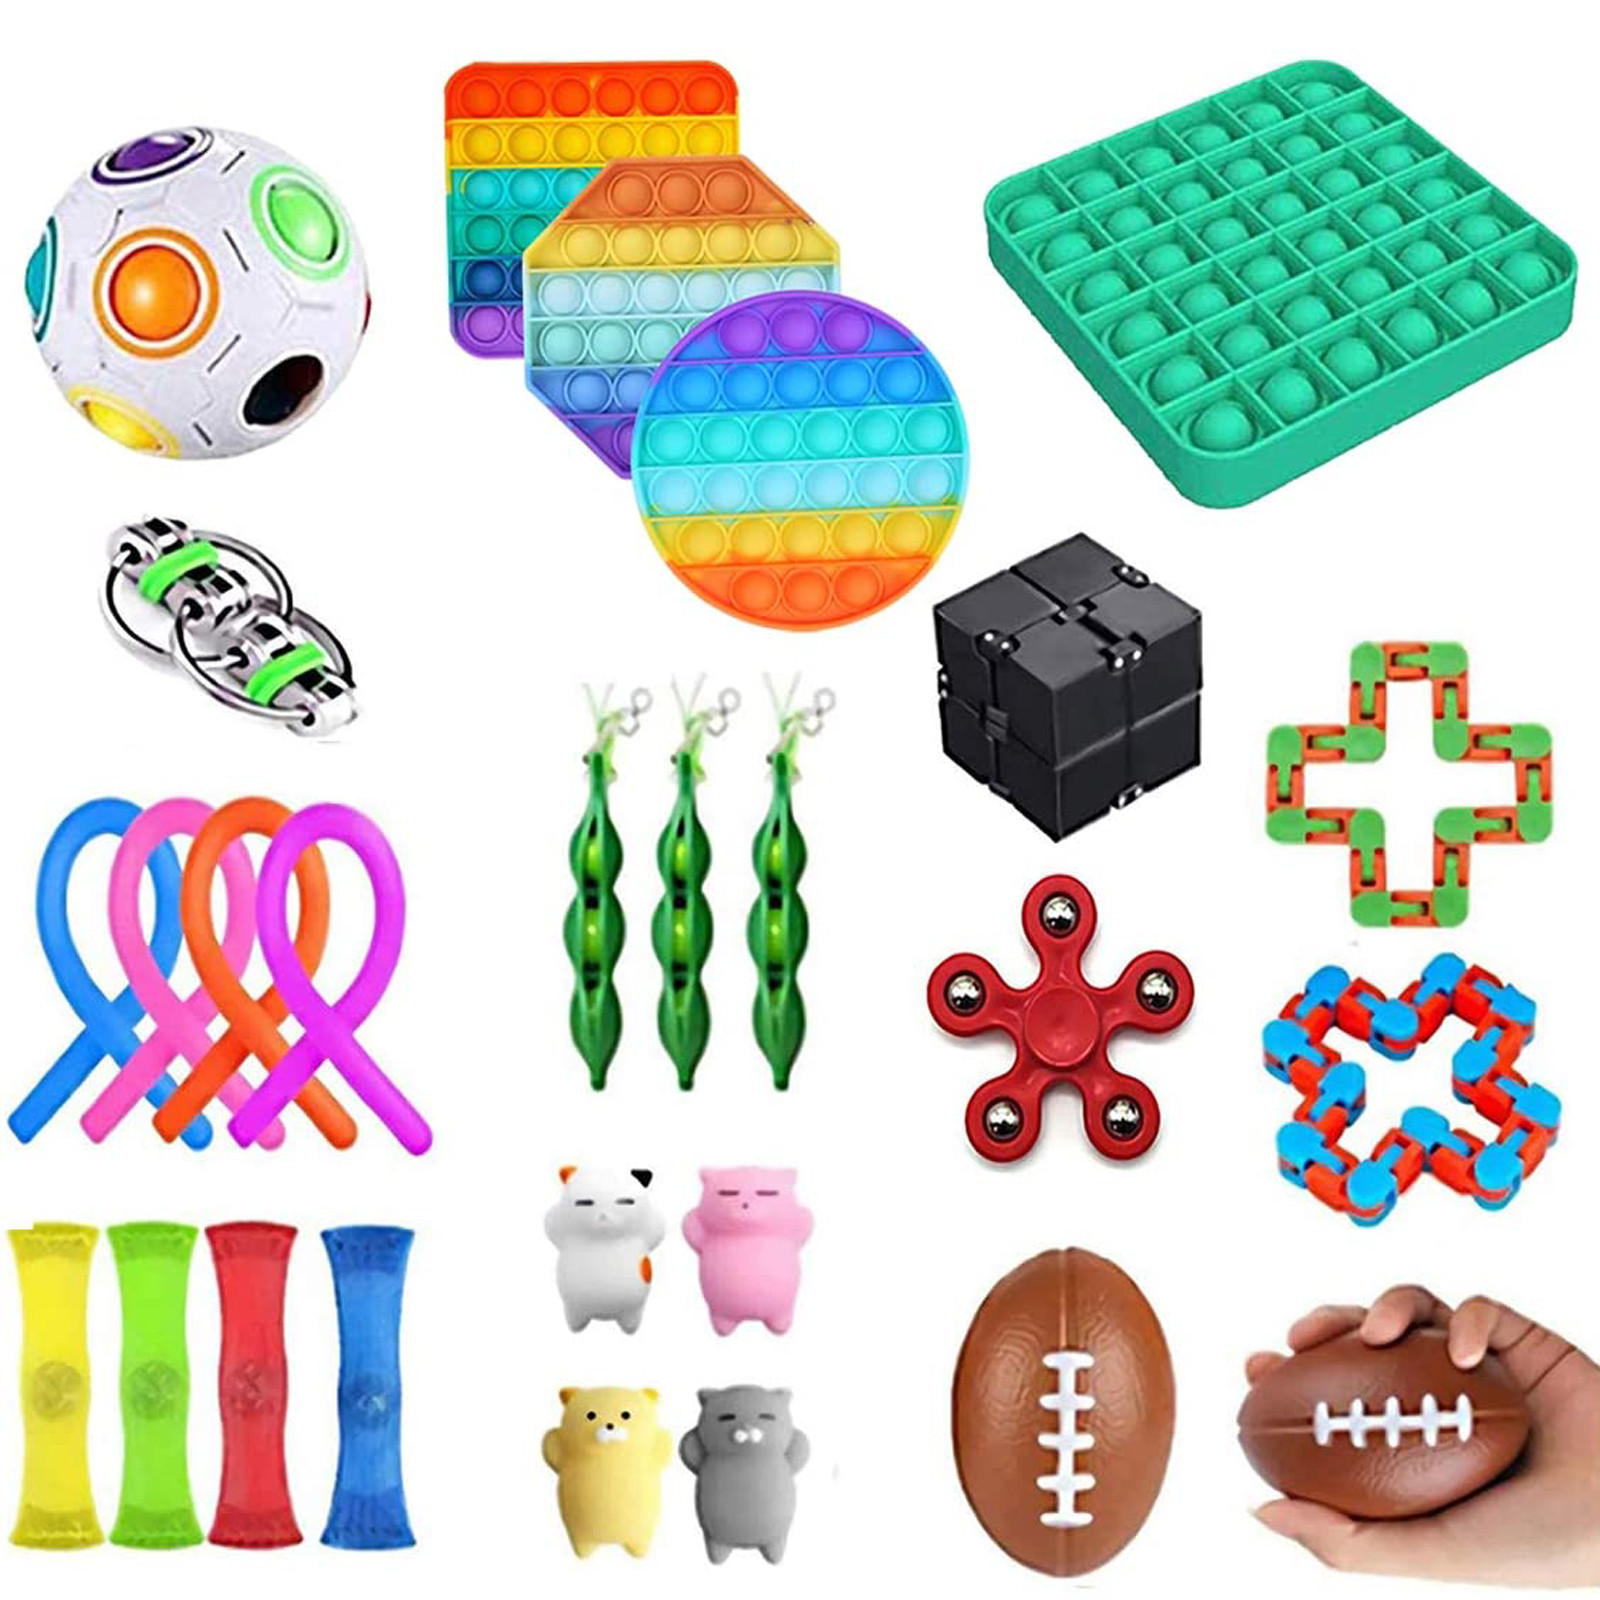 A Pack Fidget Sensory Toy Set Stress Relief Toys Autism Anxiety Relief Stress fidjets img2